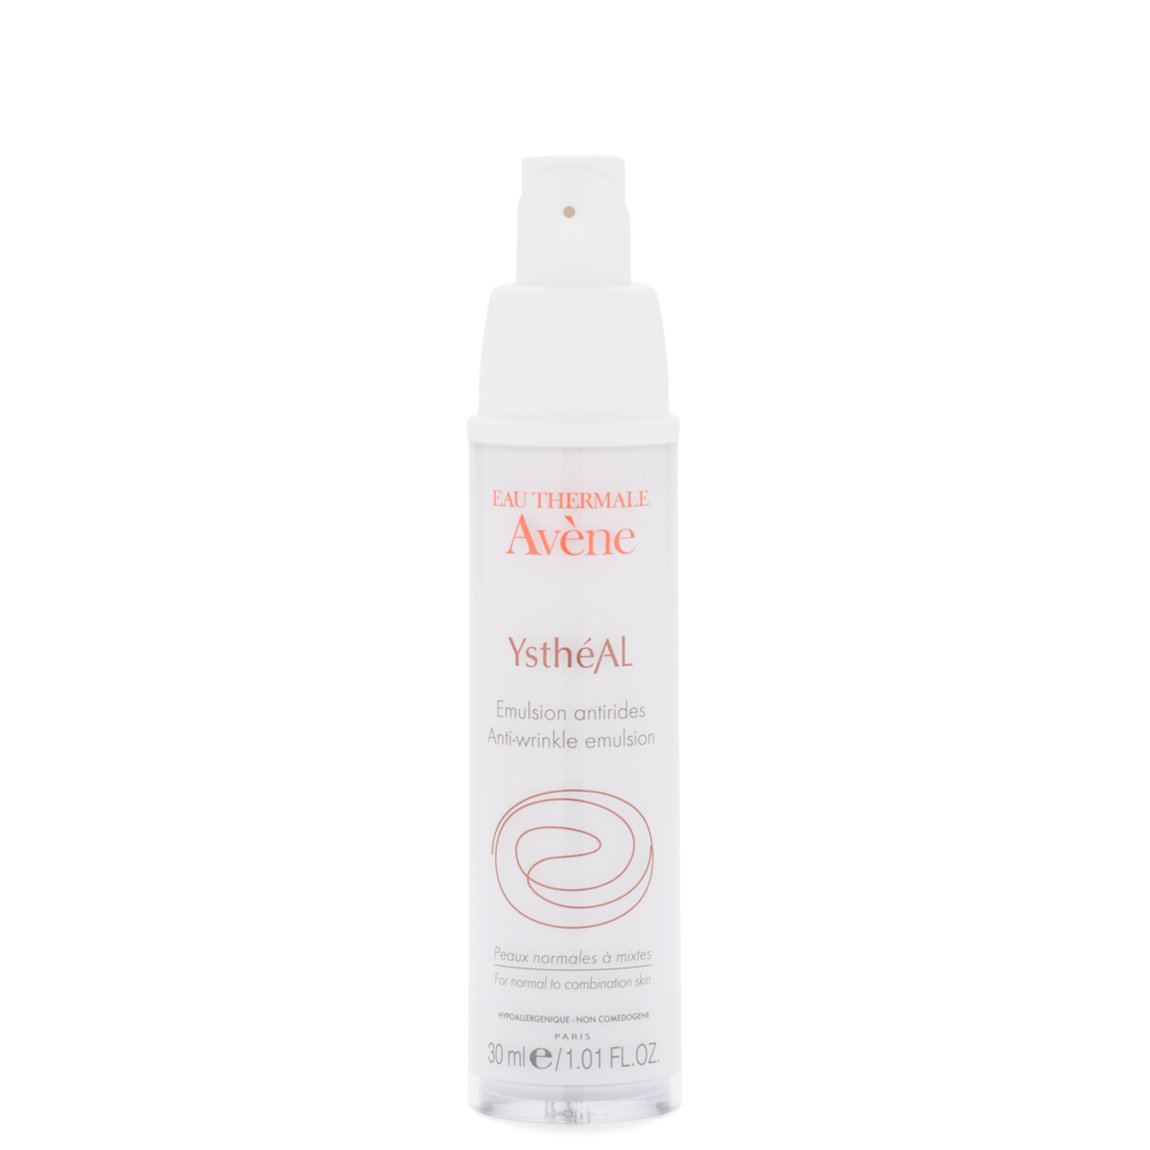 Eau Thermale Avène Ystheal Anti-Wrinkle Emulsion